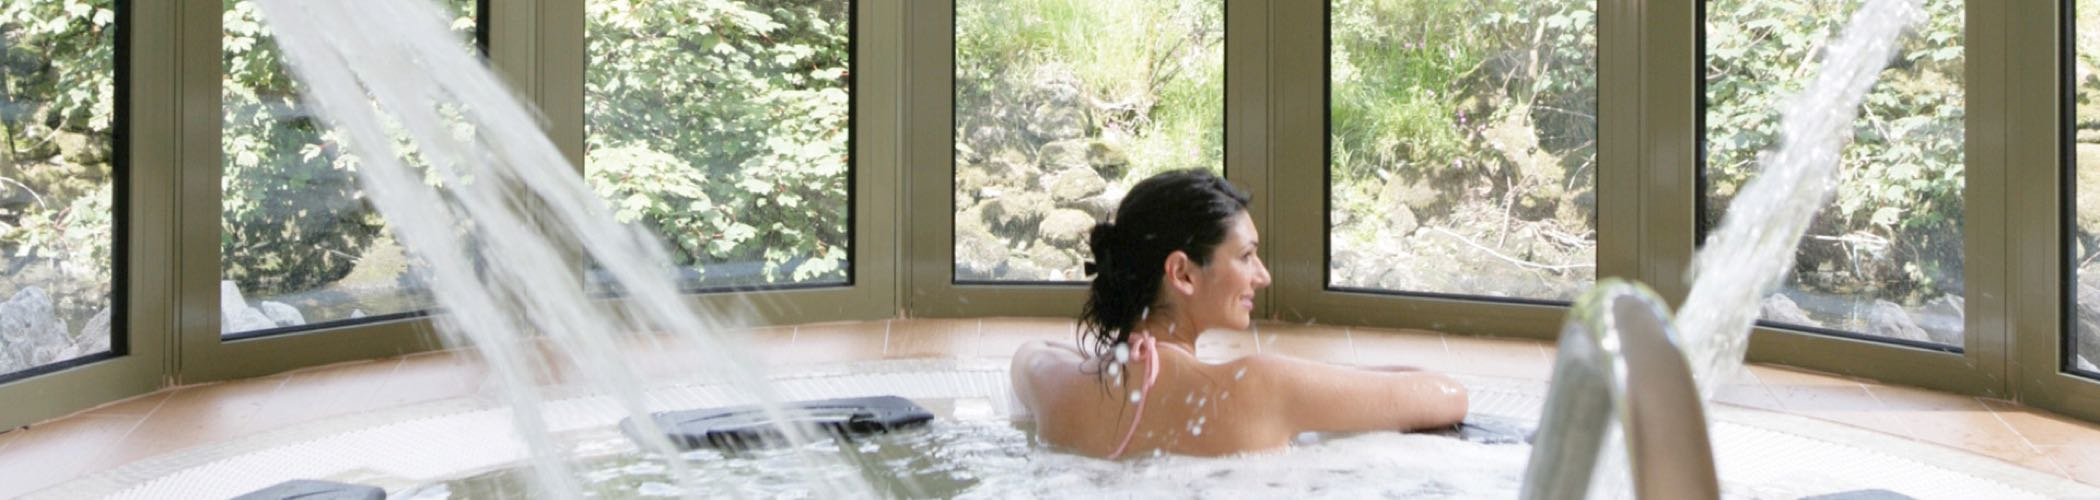 The most romantic hotels and holiday cottages for couples for Romantic spa weekends for couples